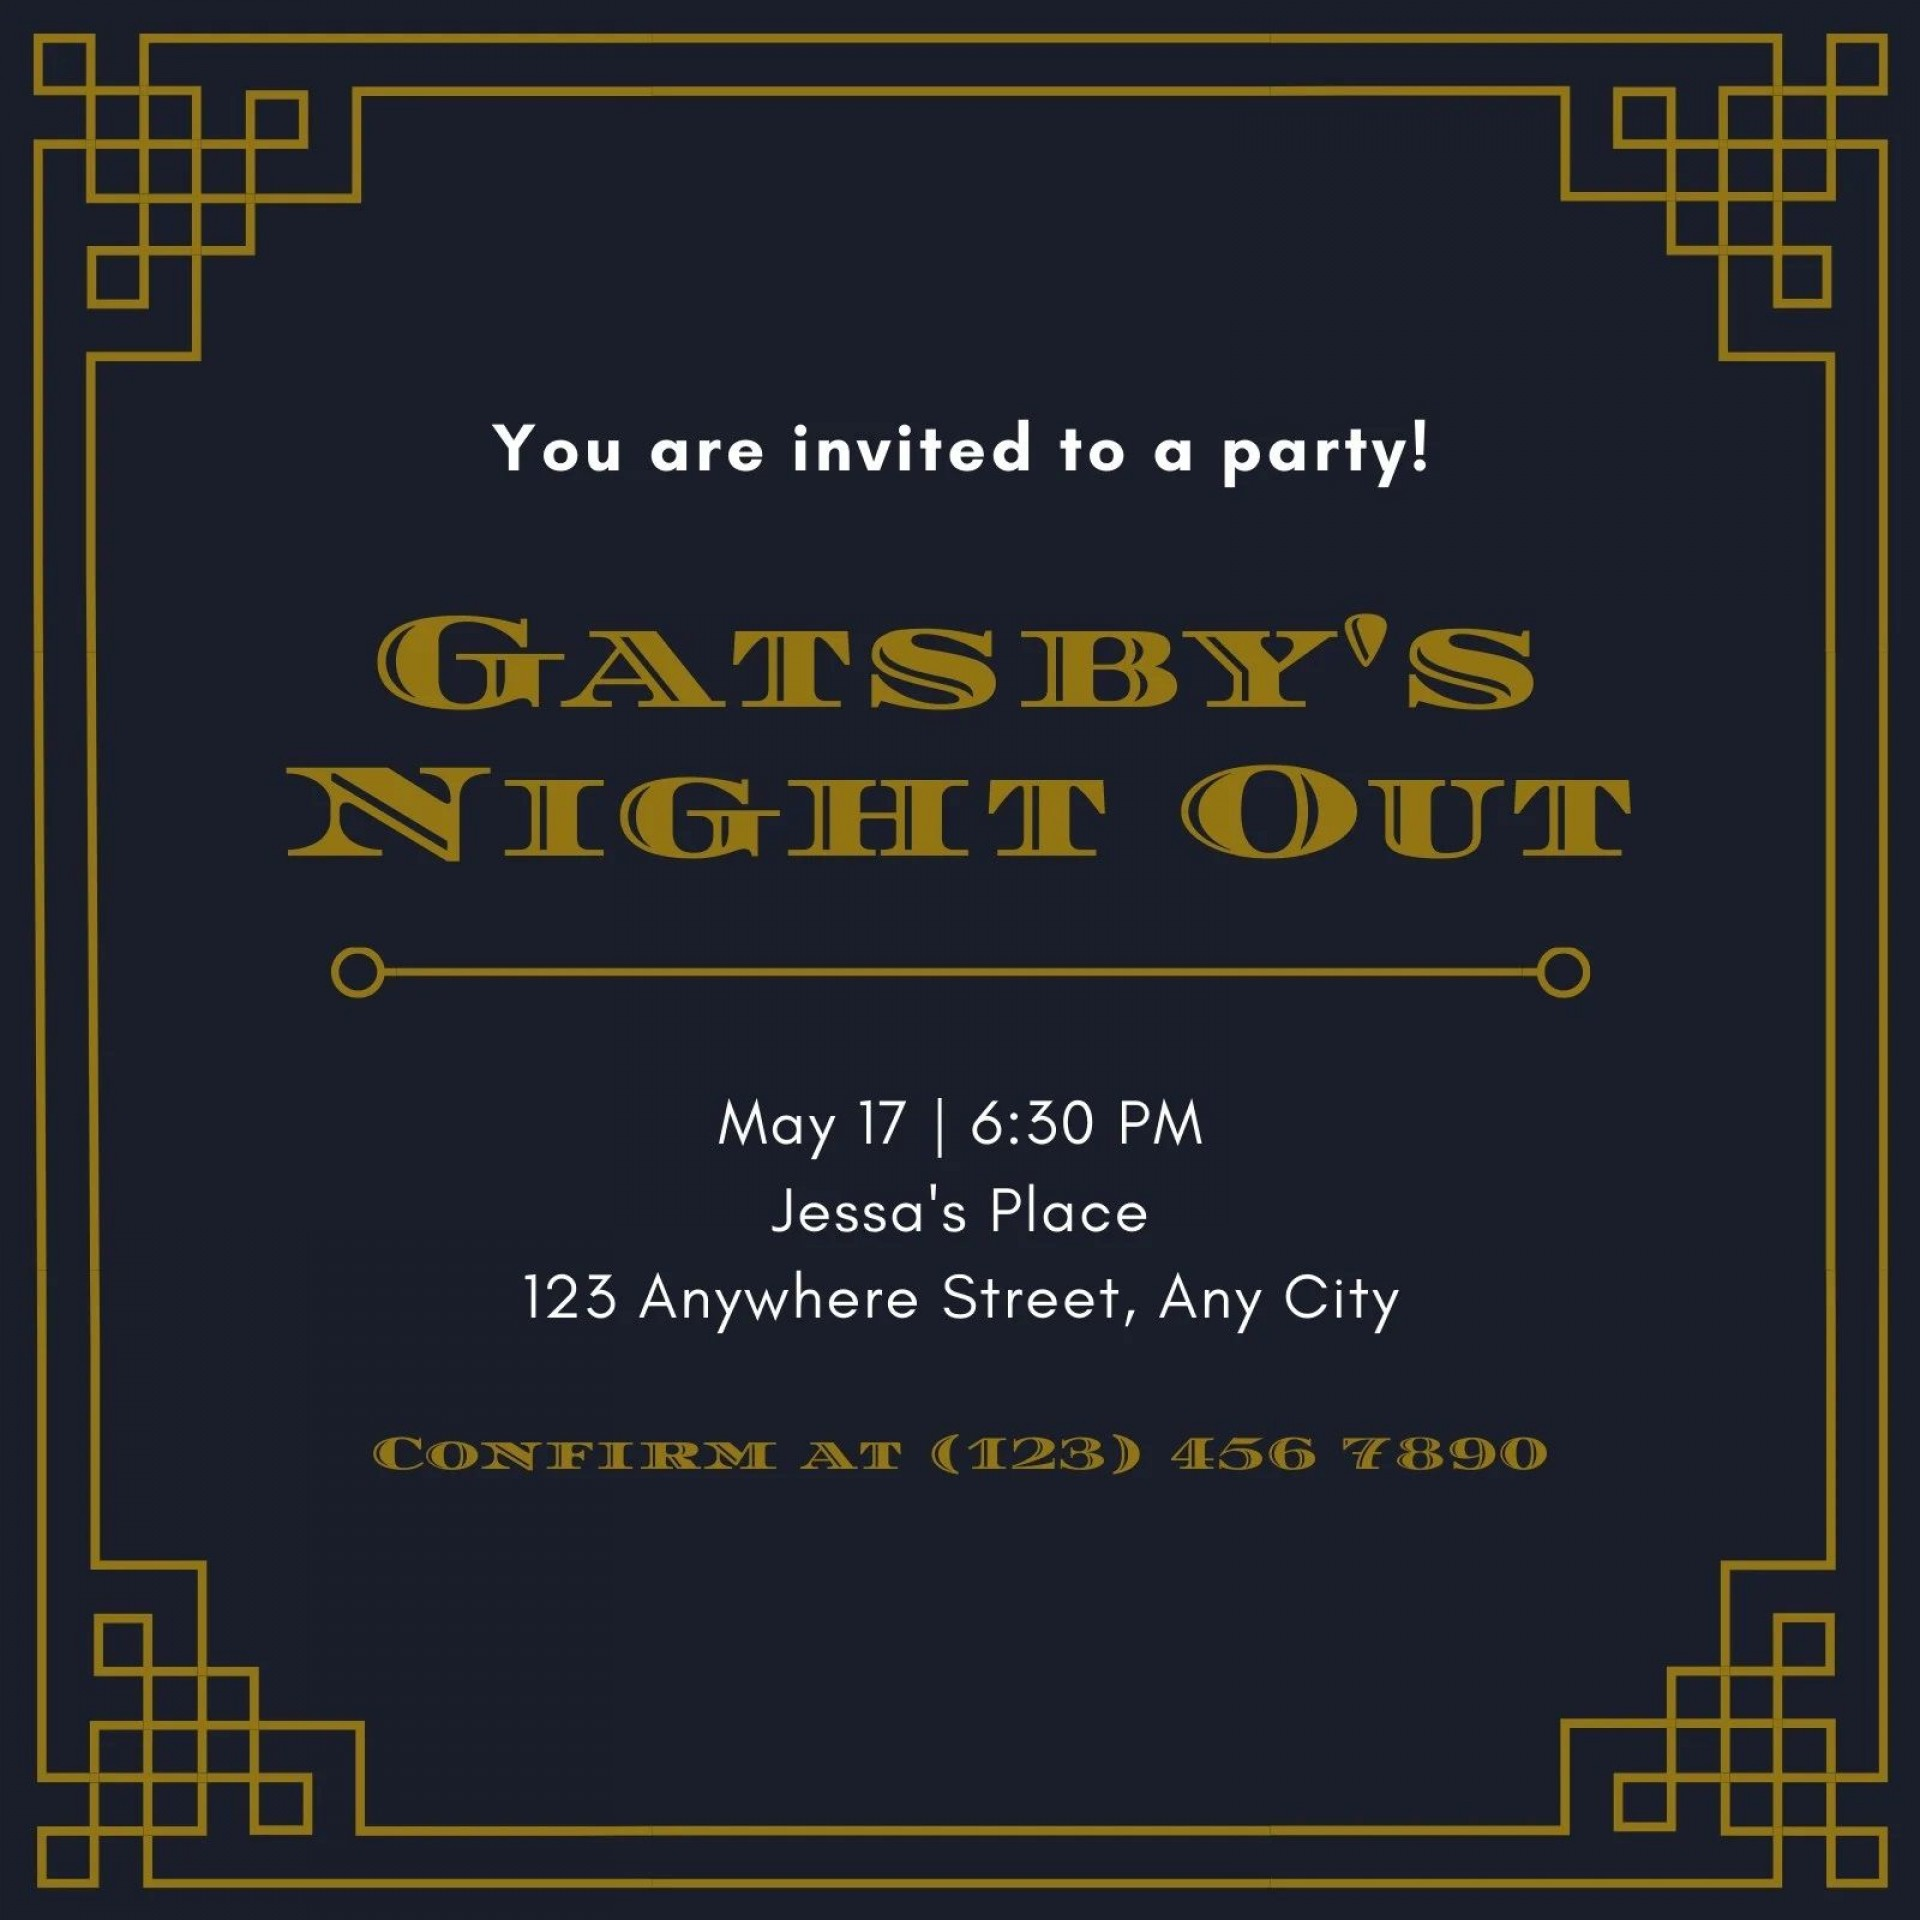 003 Wonderful Great Gatsby Invitation Template Image  Templates Free Download Blank1920